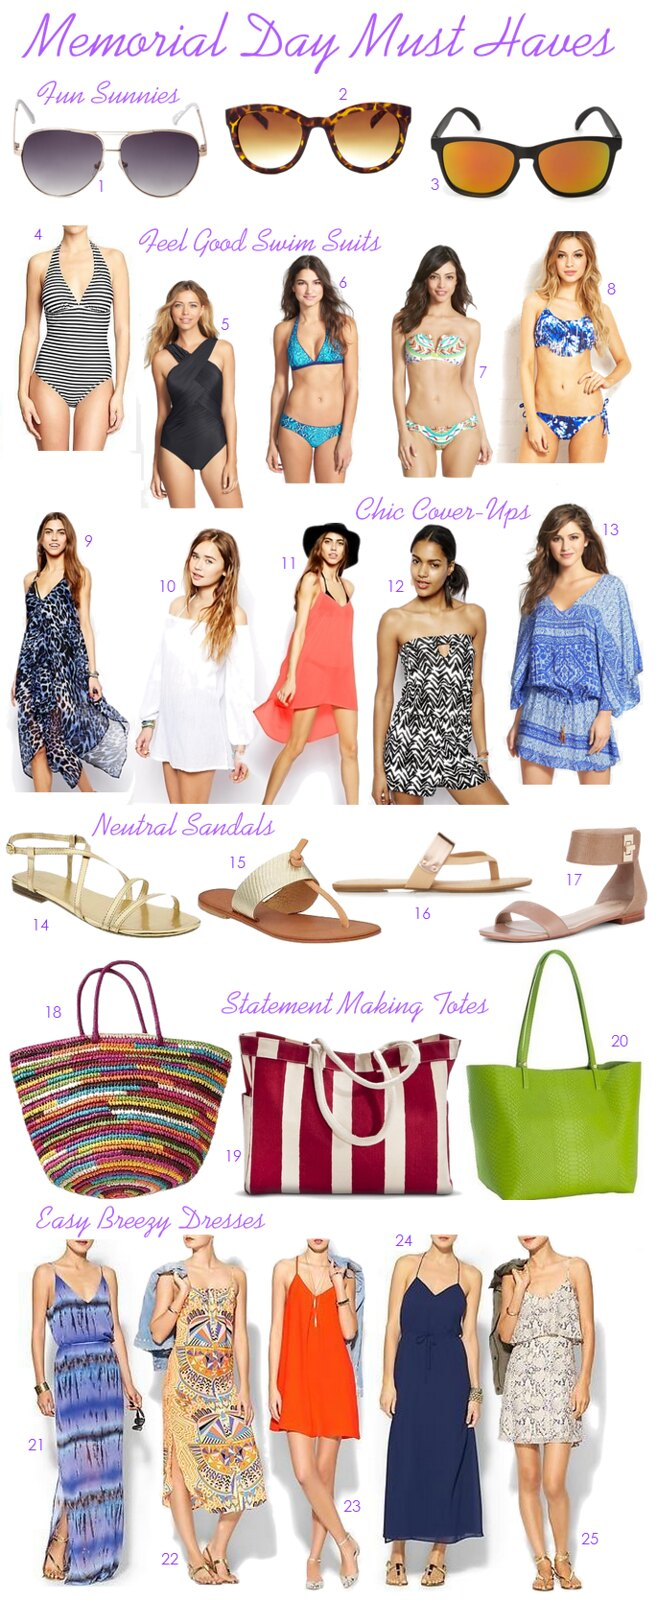 Memorial Day Must Haves on Living After Midnite #SummerStyle #SummerHoliday #SummerVacation